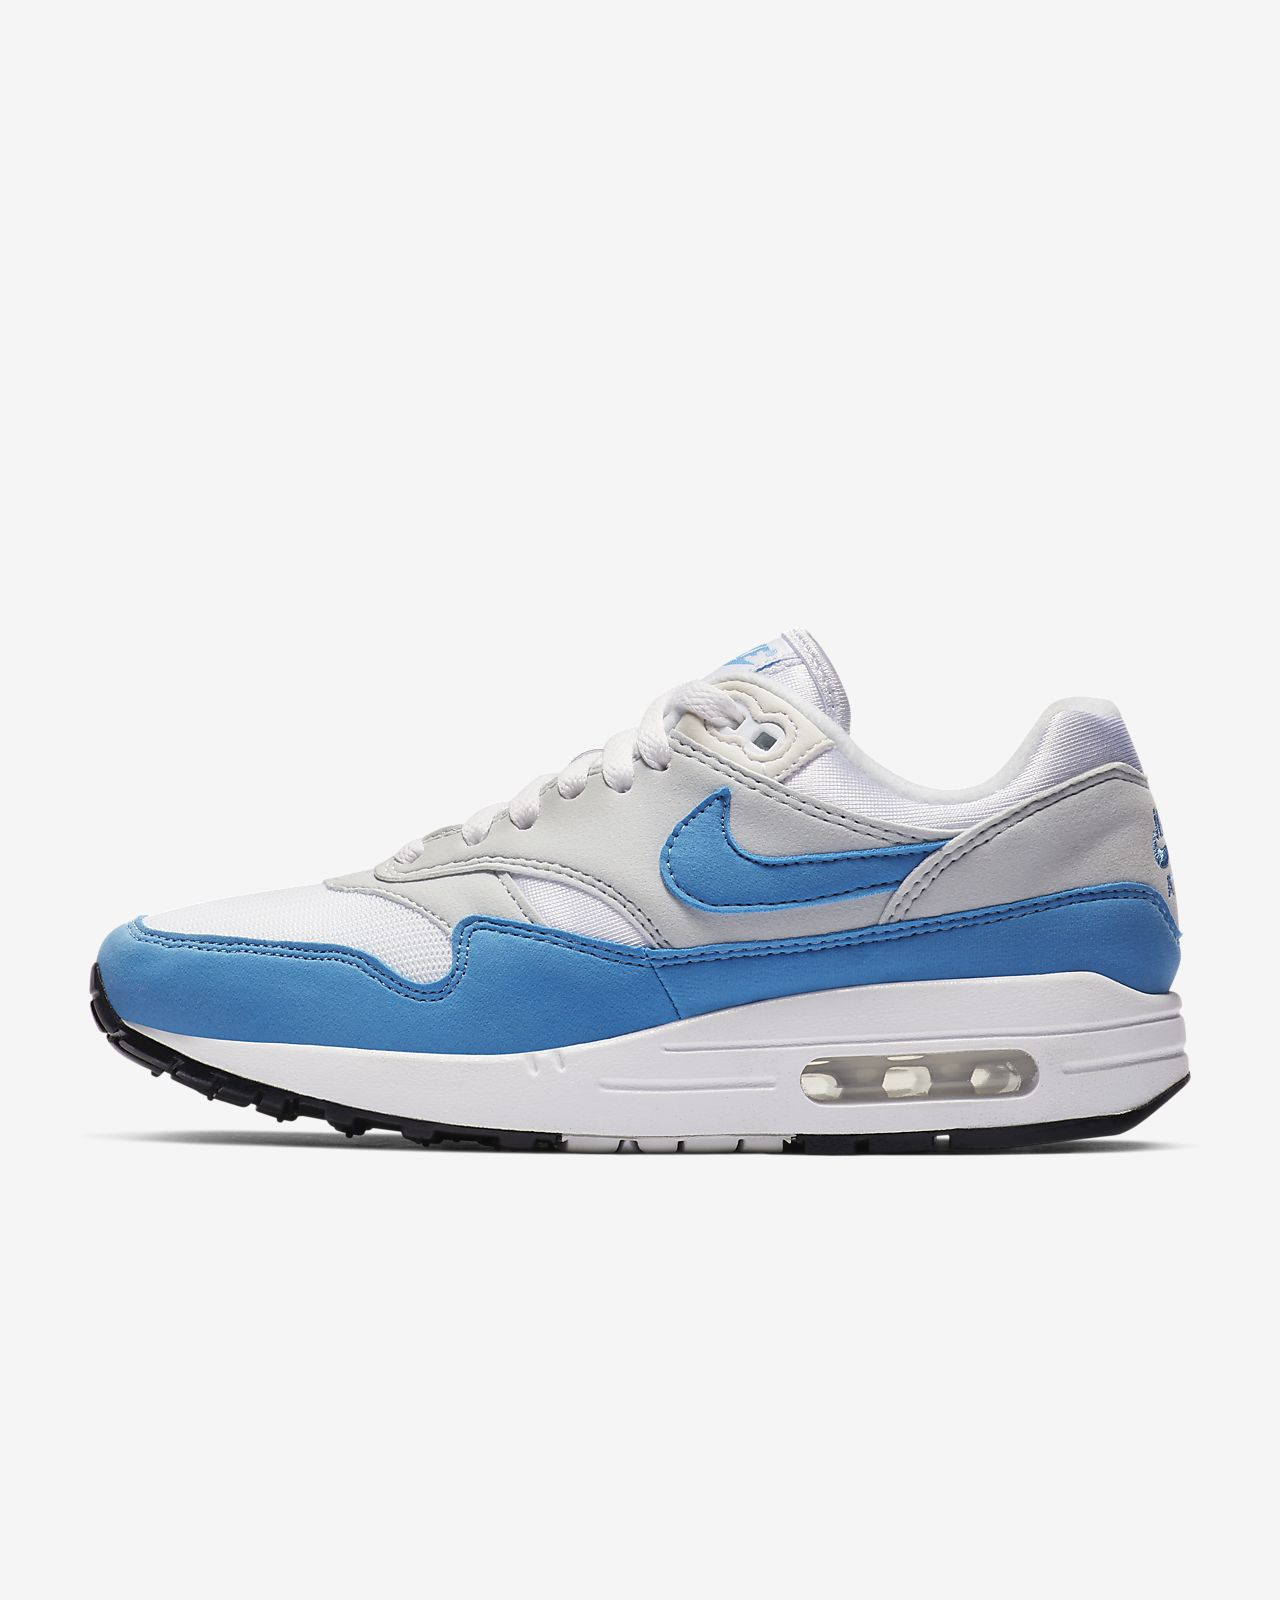 finest selection 0aa08 c8757 ... Nike Air Max 1 Essential sko til dame